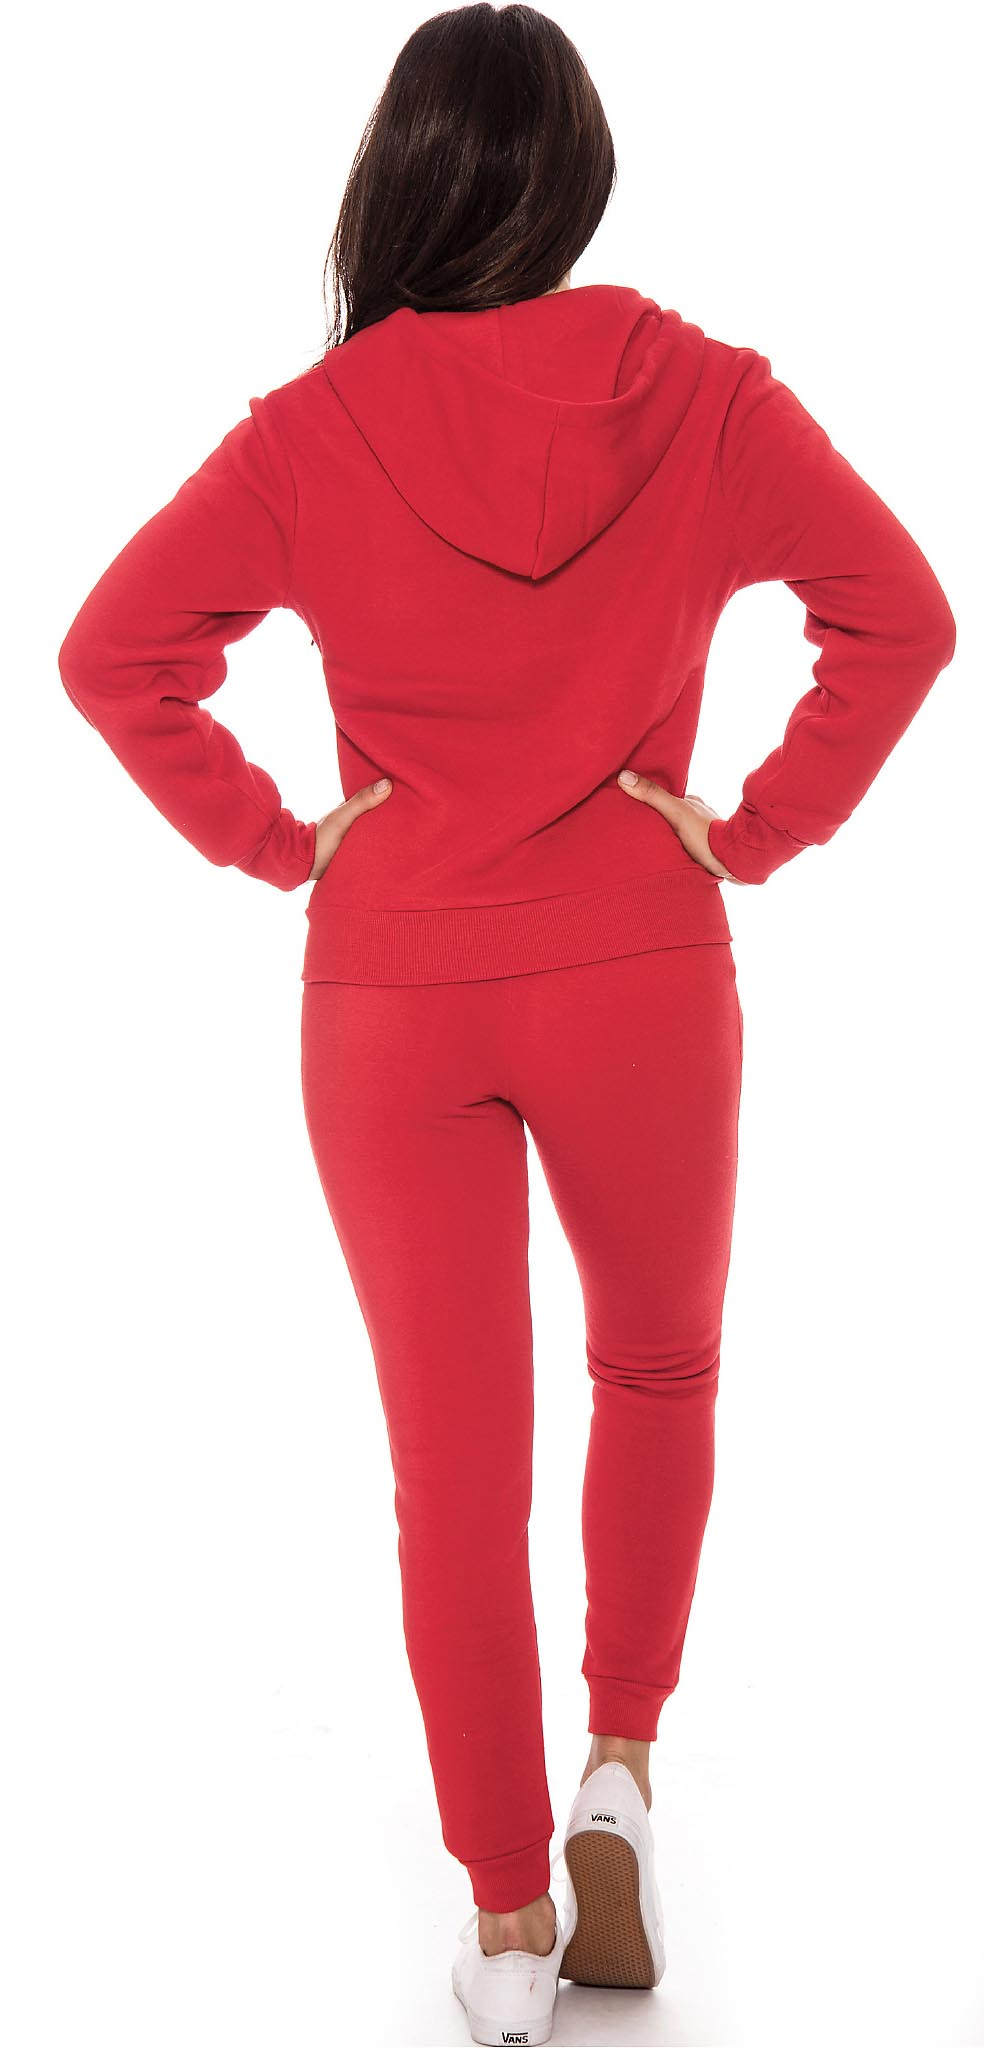 Shop for juniors pant suit online at Target. Free shipping on purchases over $35 and save 5% every day with your Target REDcard.